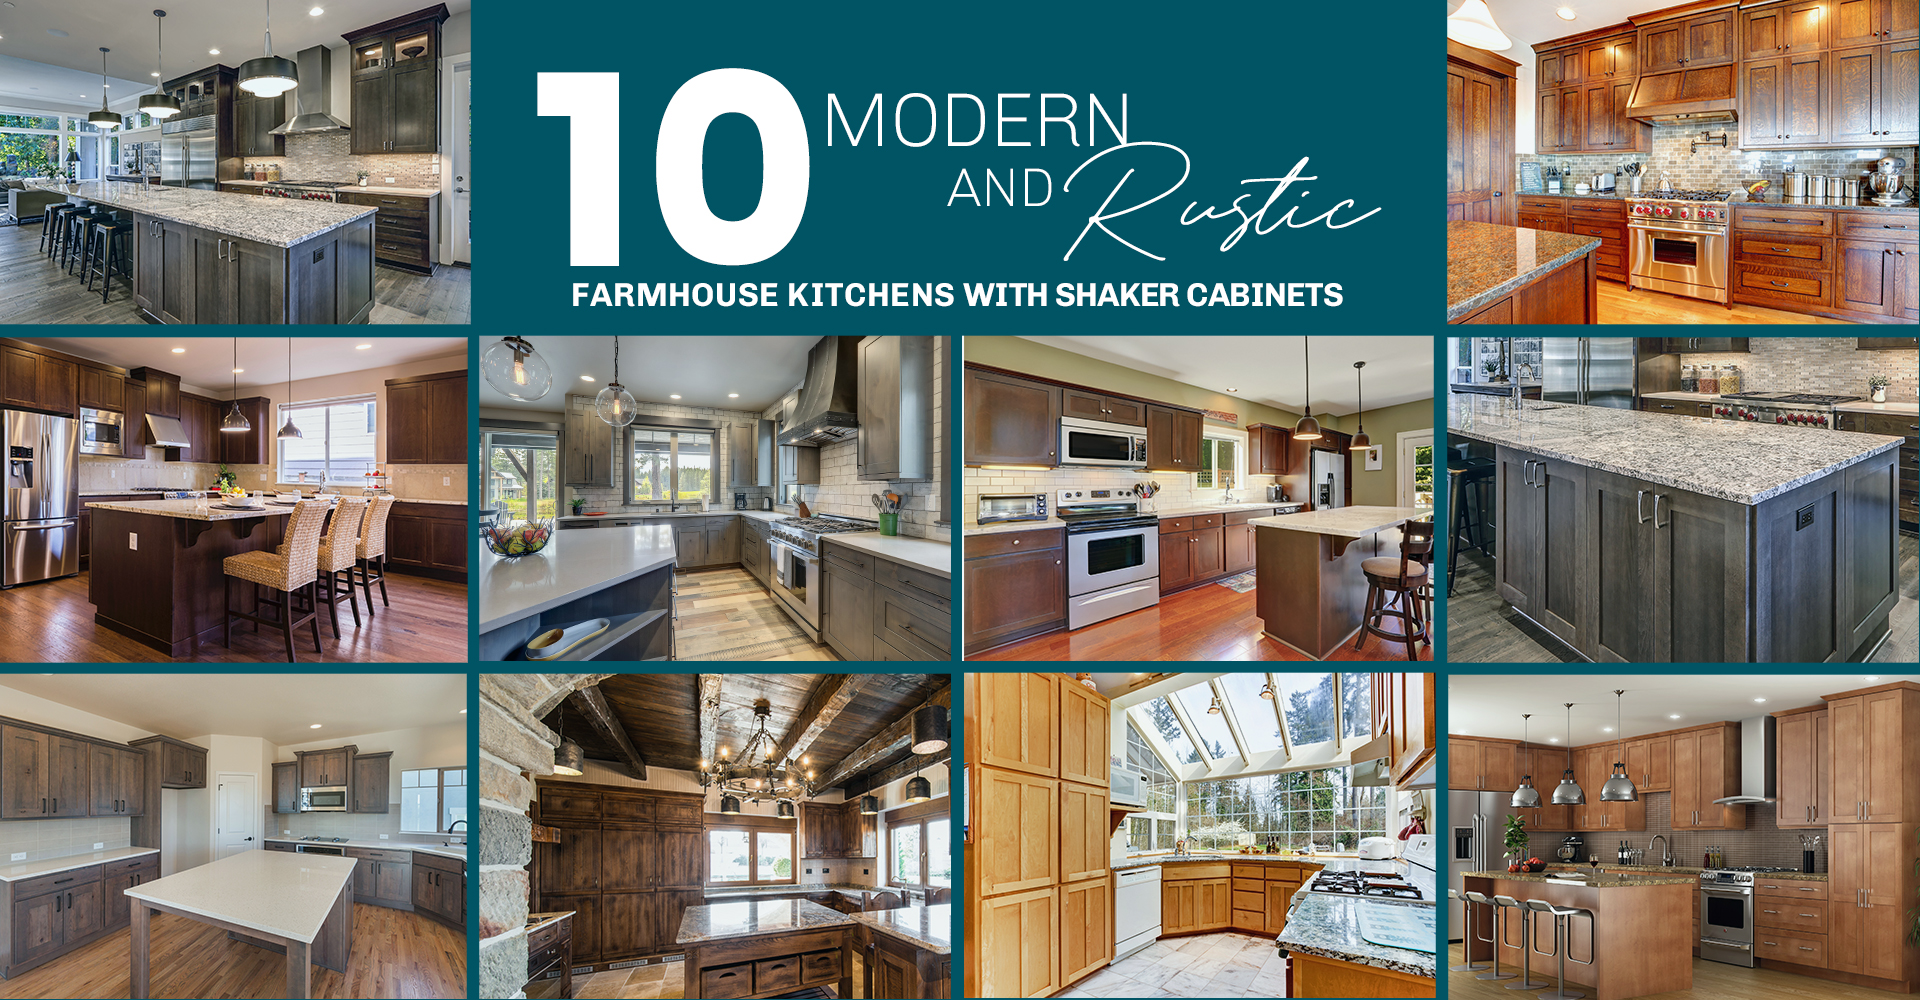 10 Modern and Rustic Farmhouse Kitchens with Shaker Cabinets